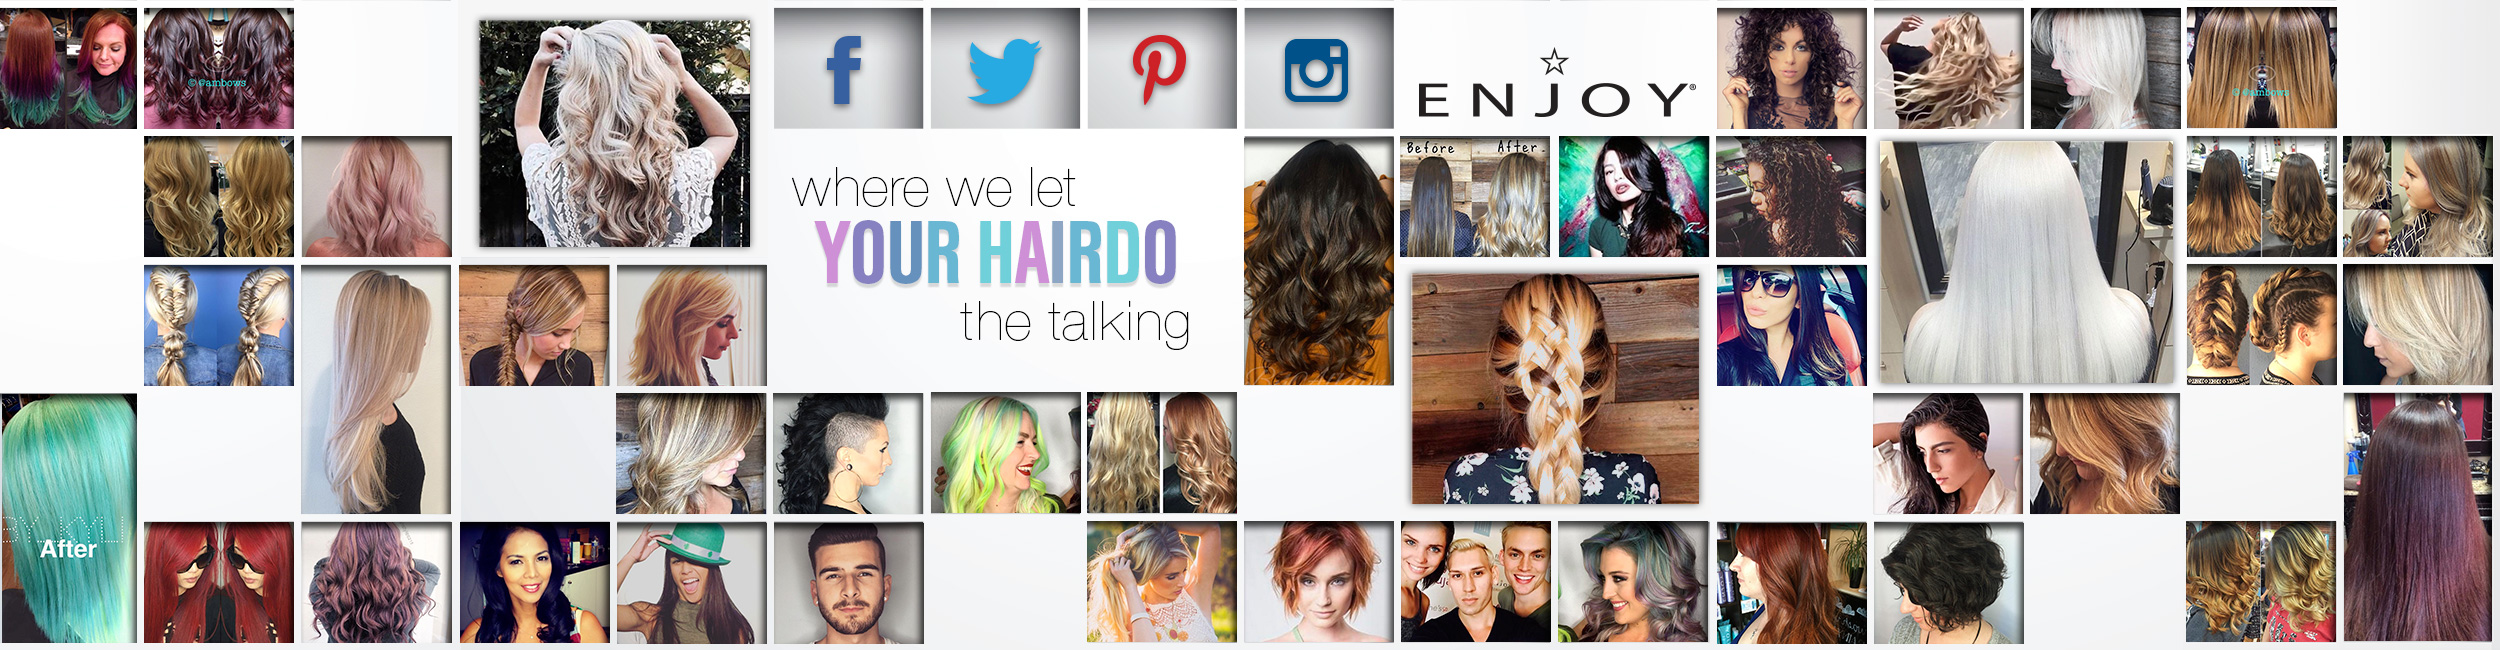 Enjoy Hair Care - Enjoy Professional Hair Care Products